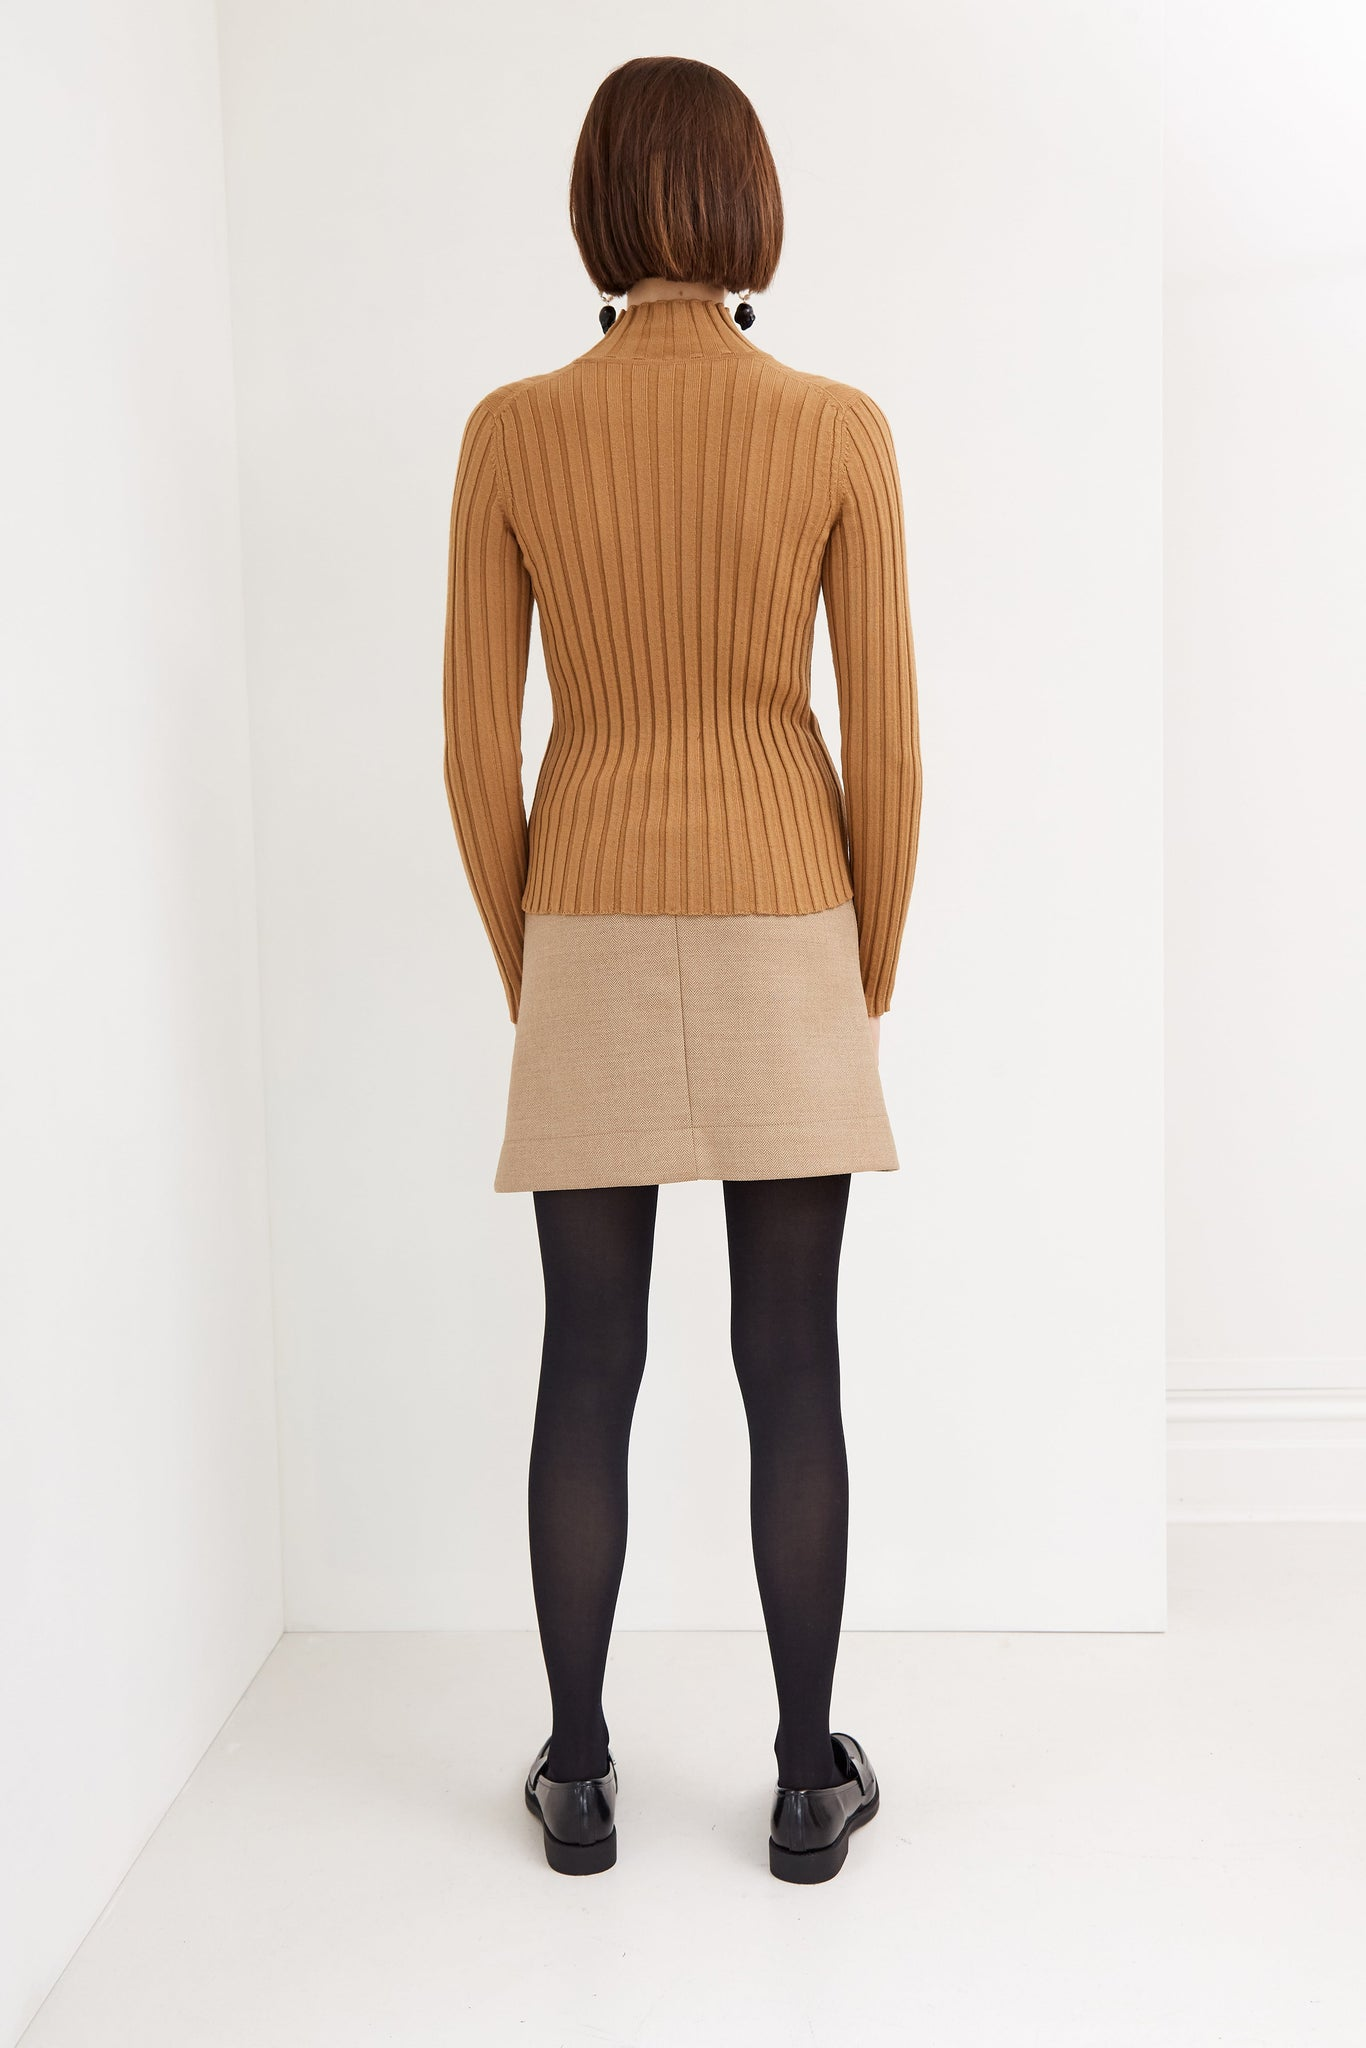 Autumn Knit | Merino Wool | Toffee